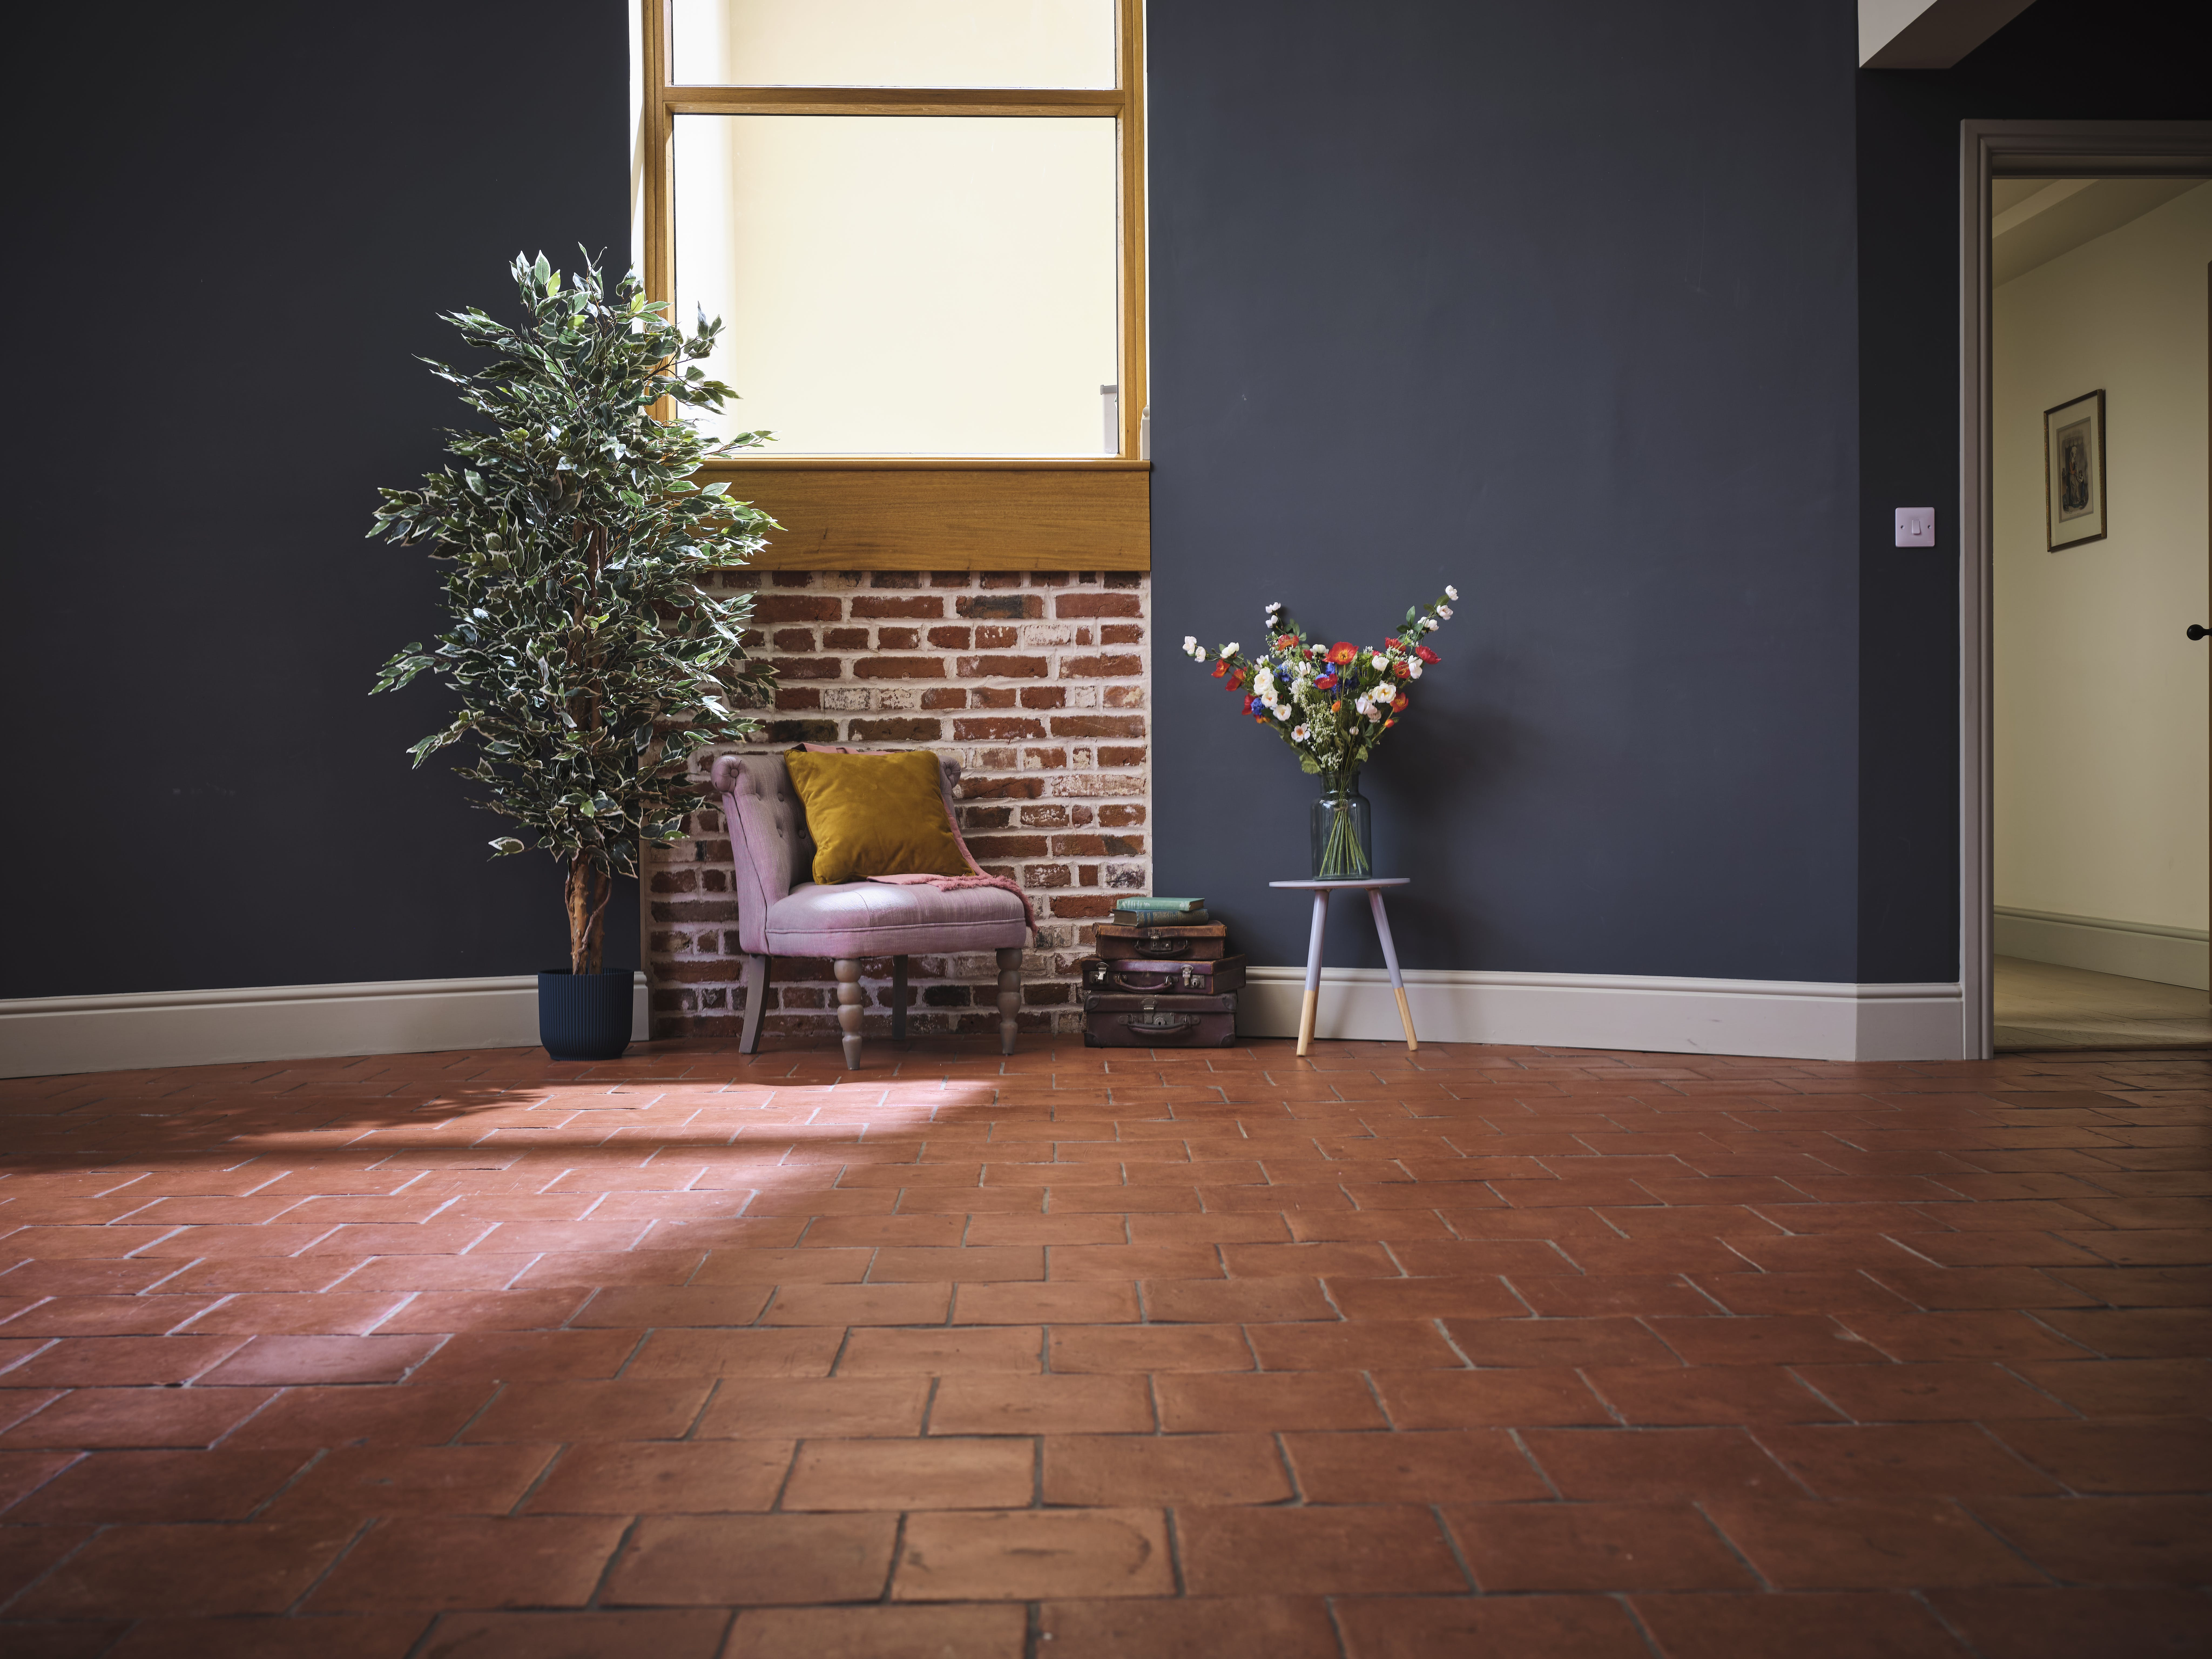 artificial variegated ficus tree next to armchair 180cm